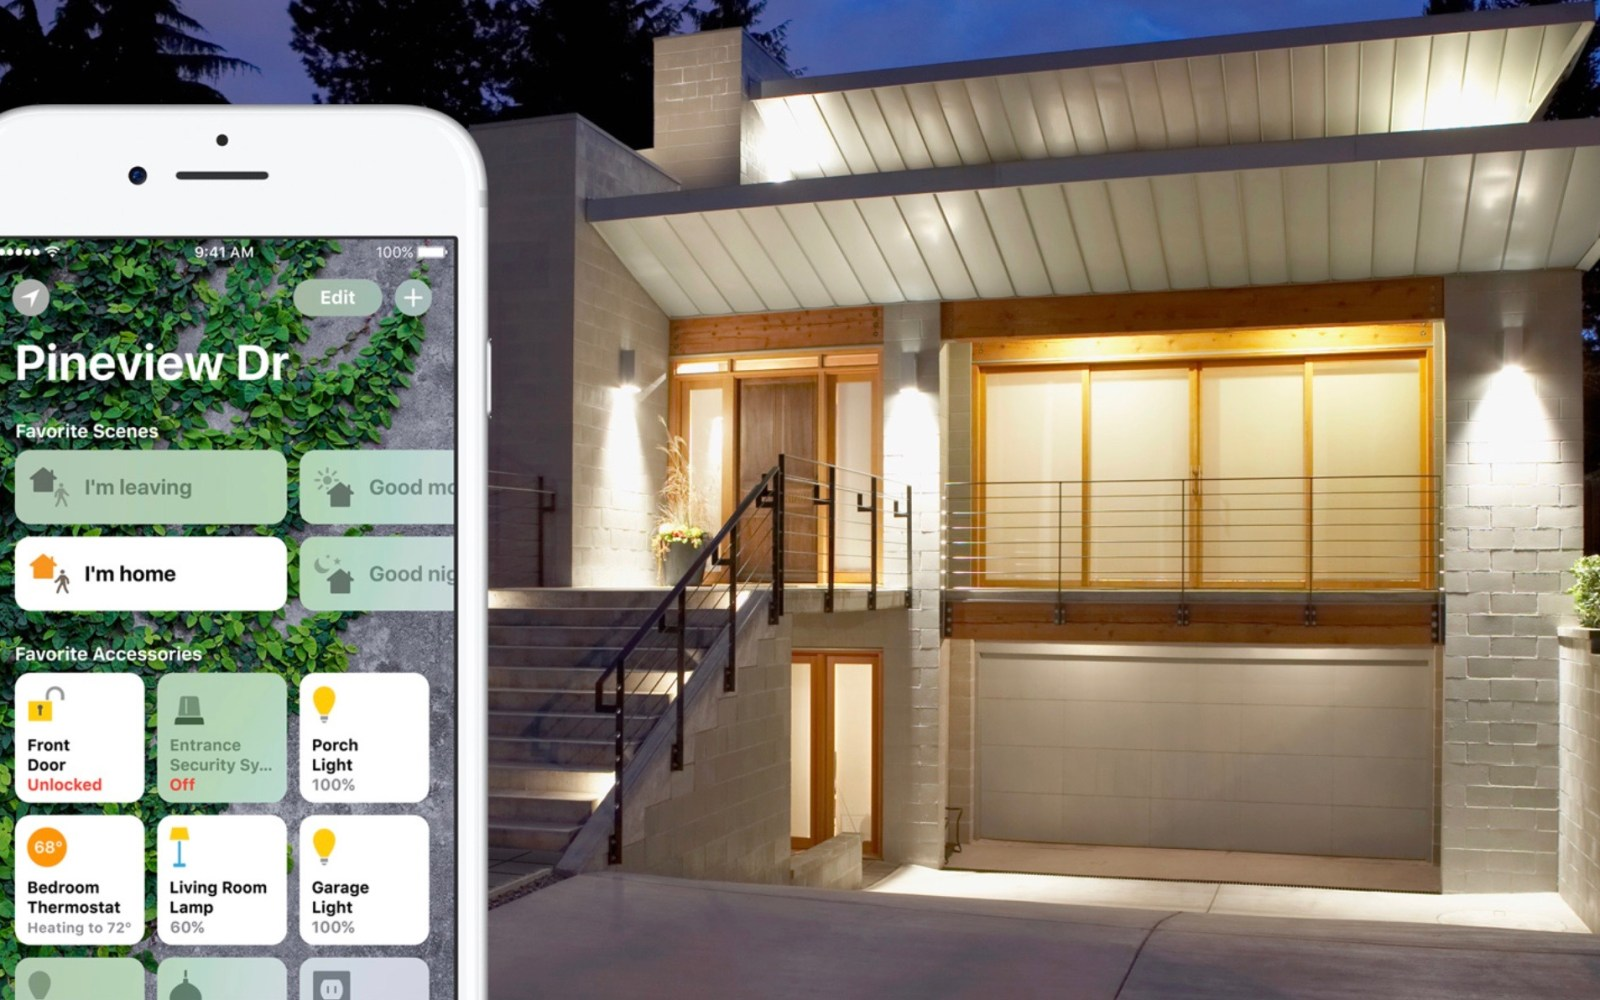 Just how expensive is a HomeKit house? Here's my estimation